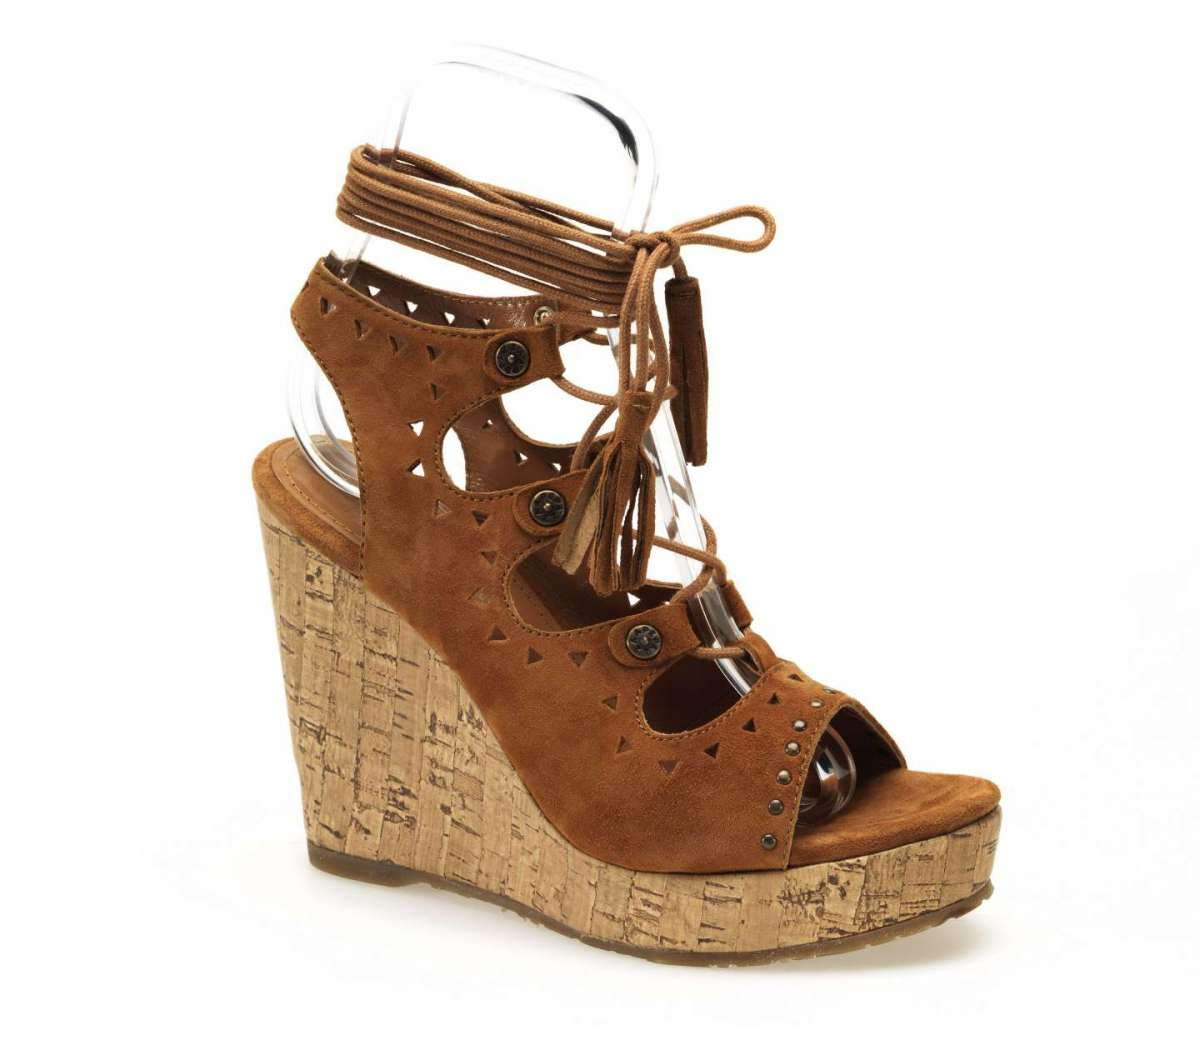 Sandali cuoio lace up con zeppa